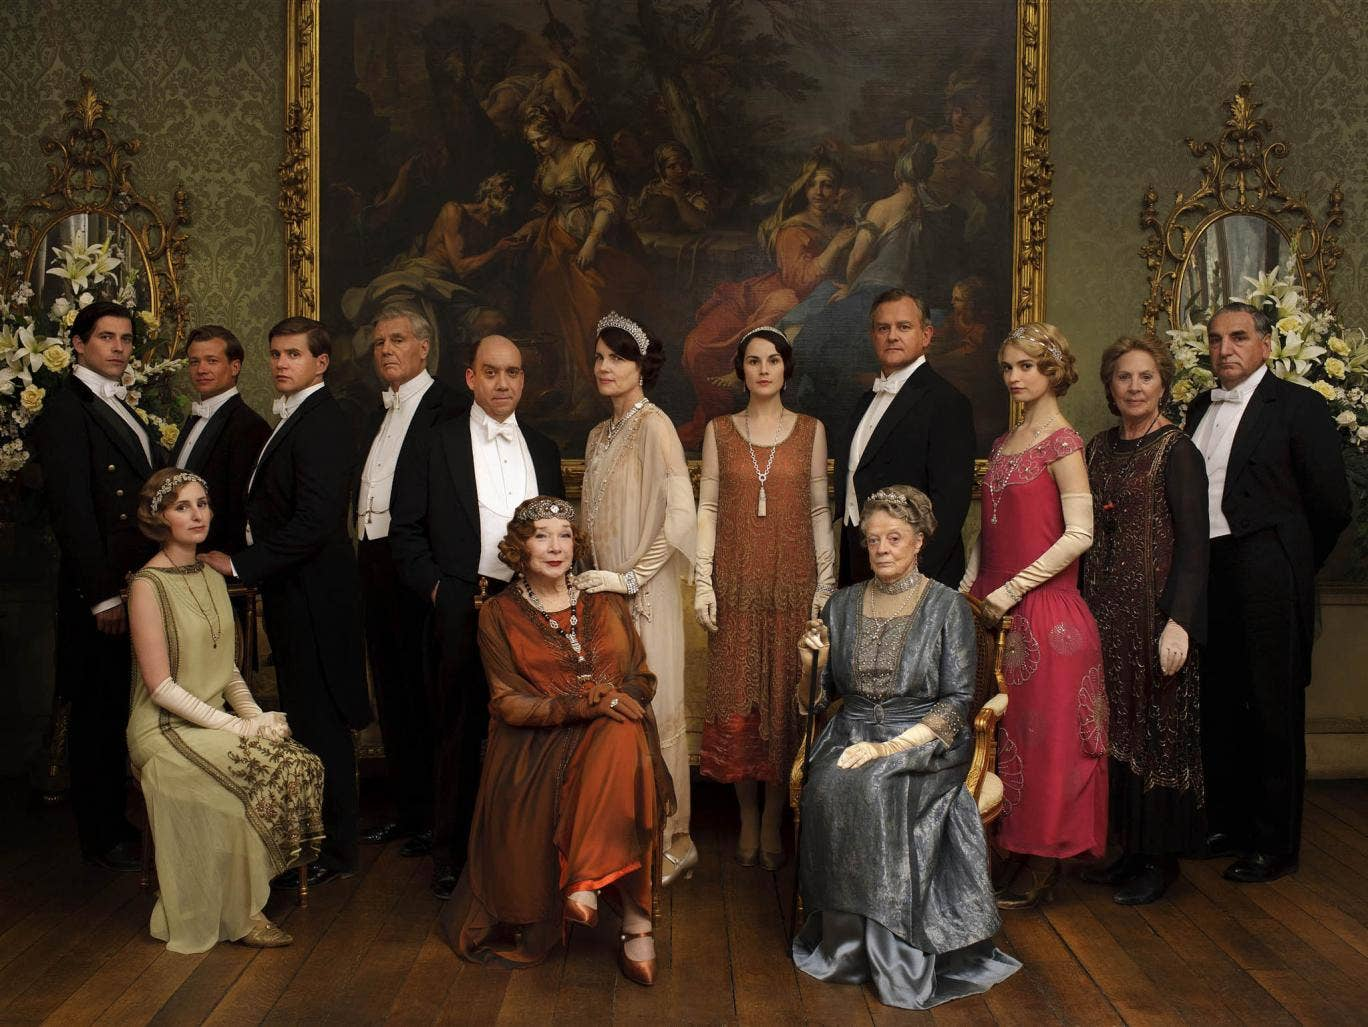 The cast of Downton Abbey in the 2013 Christmas special